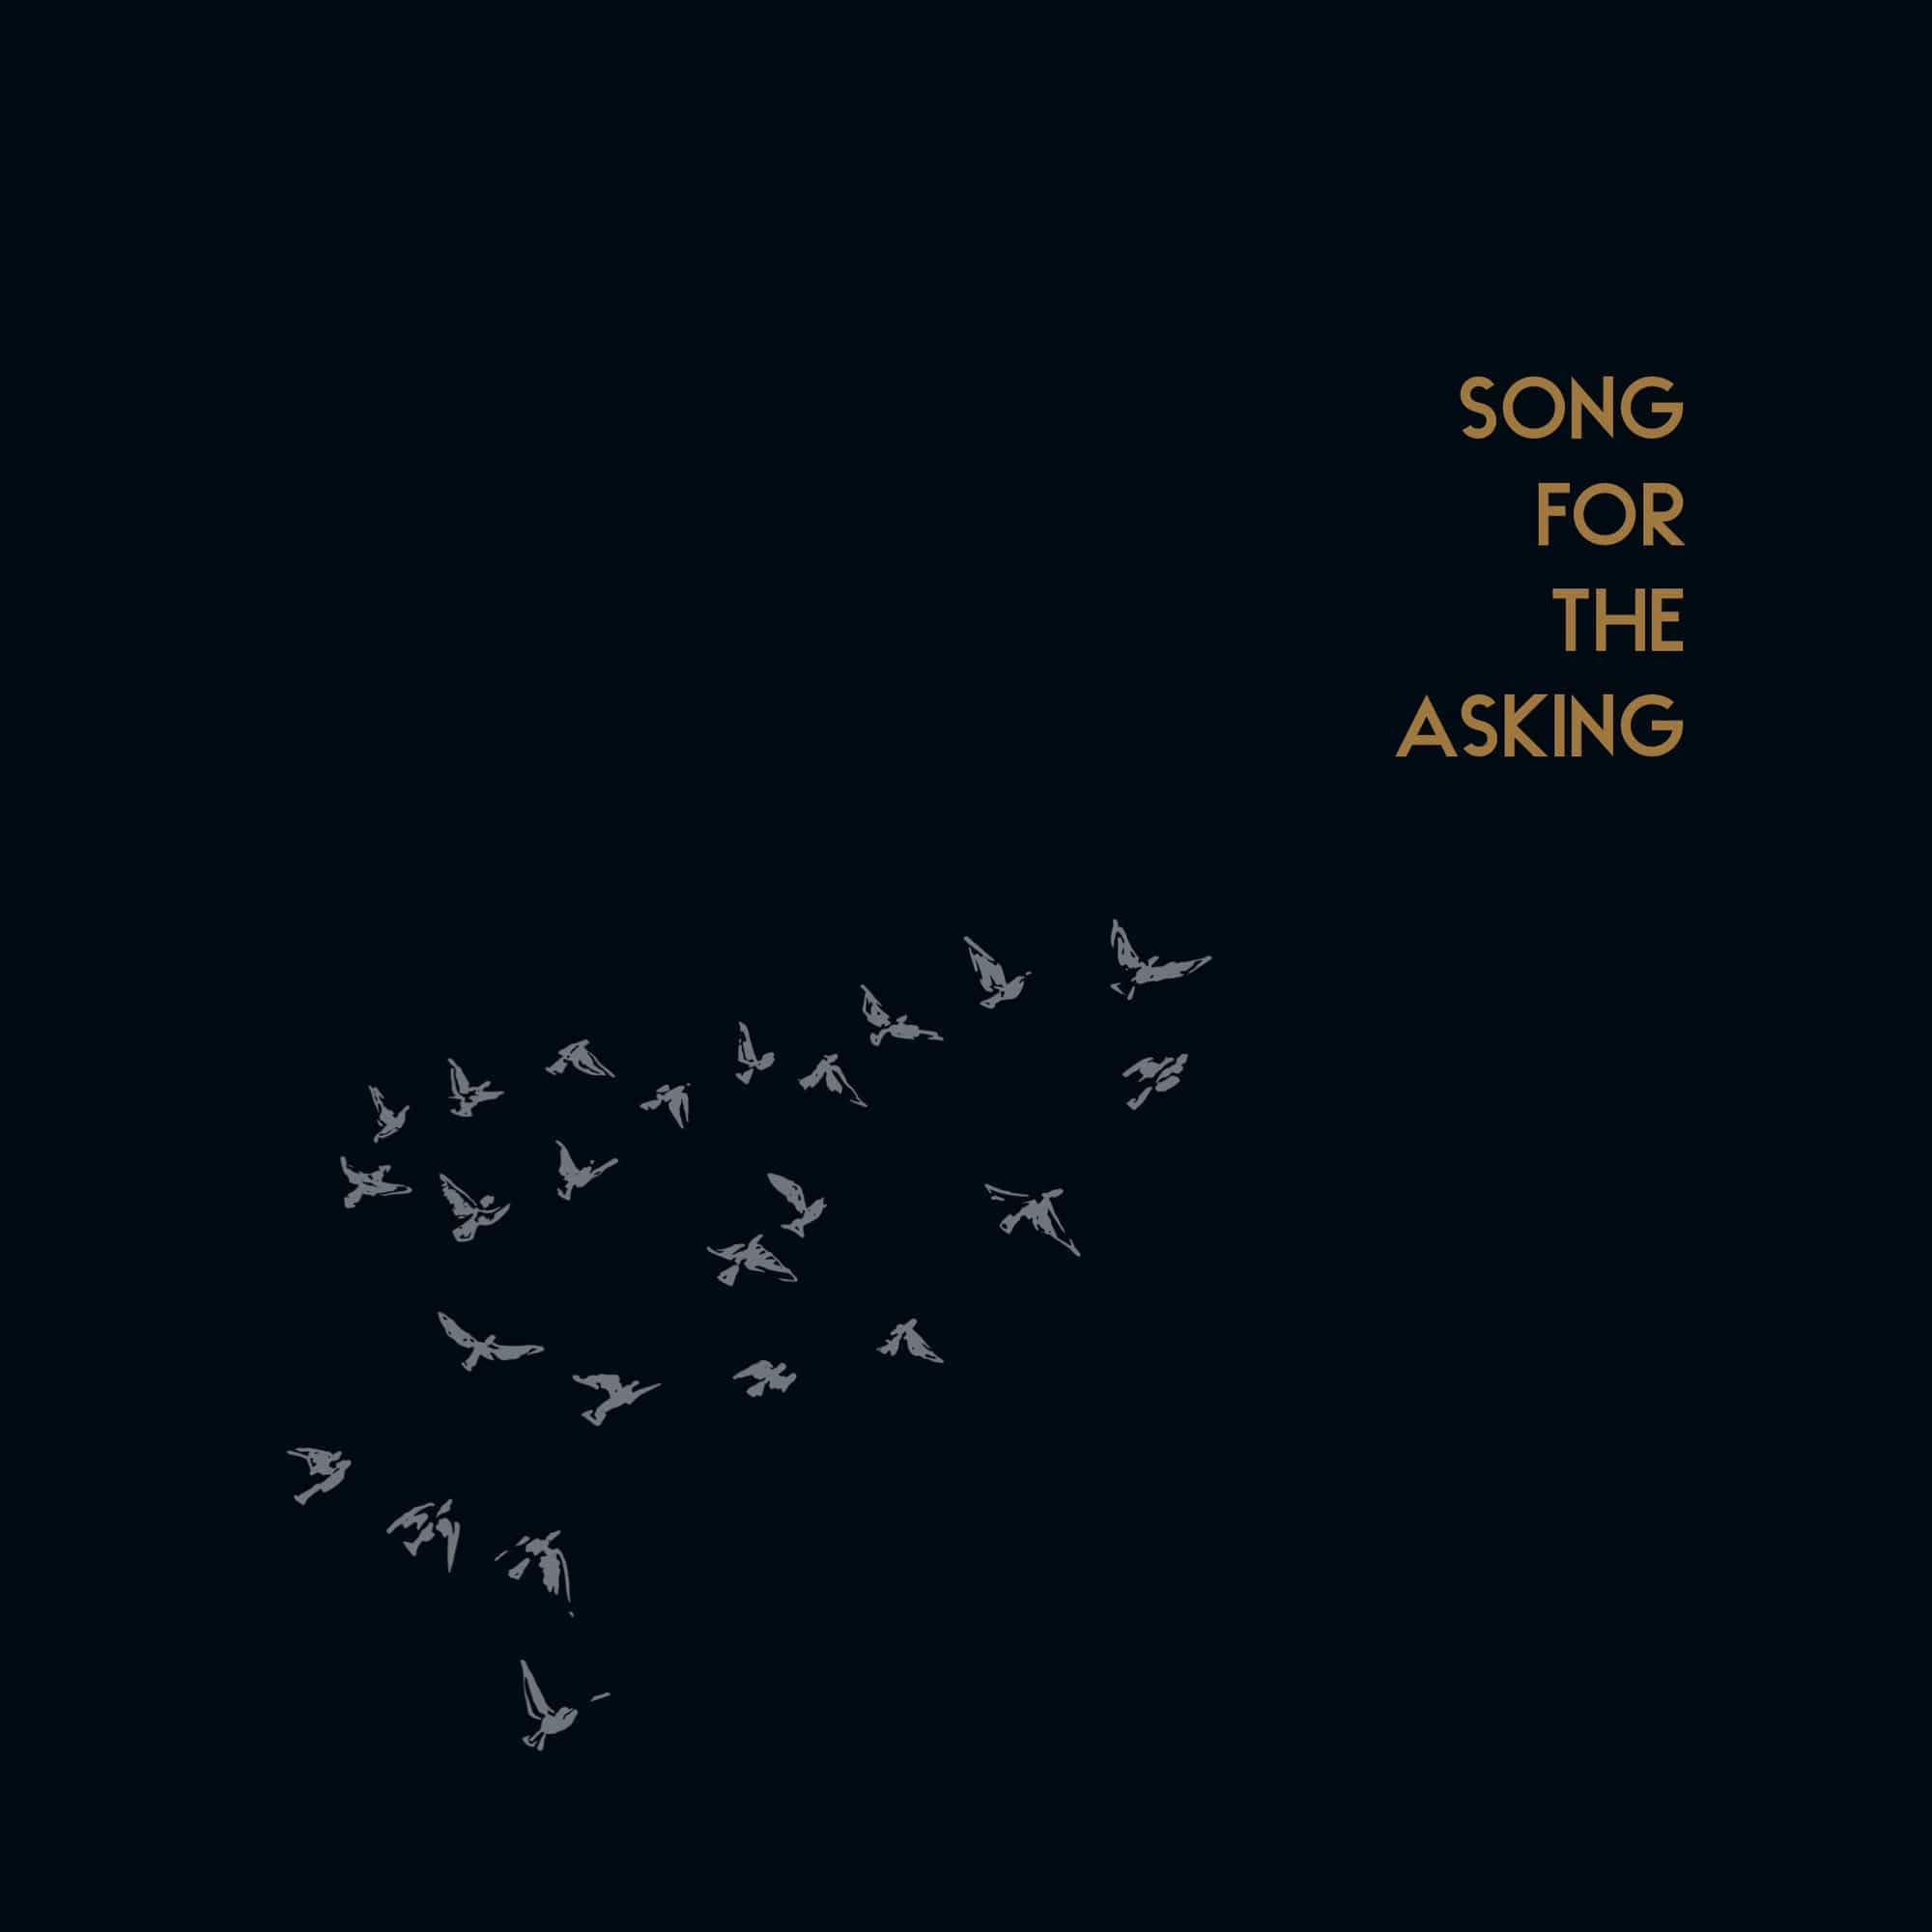 Sarah Morris & Matthew French, 'Song for the Asking'